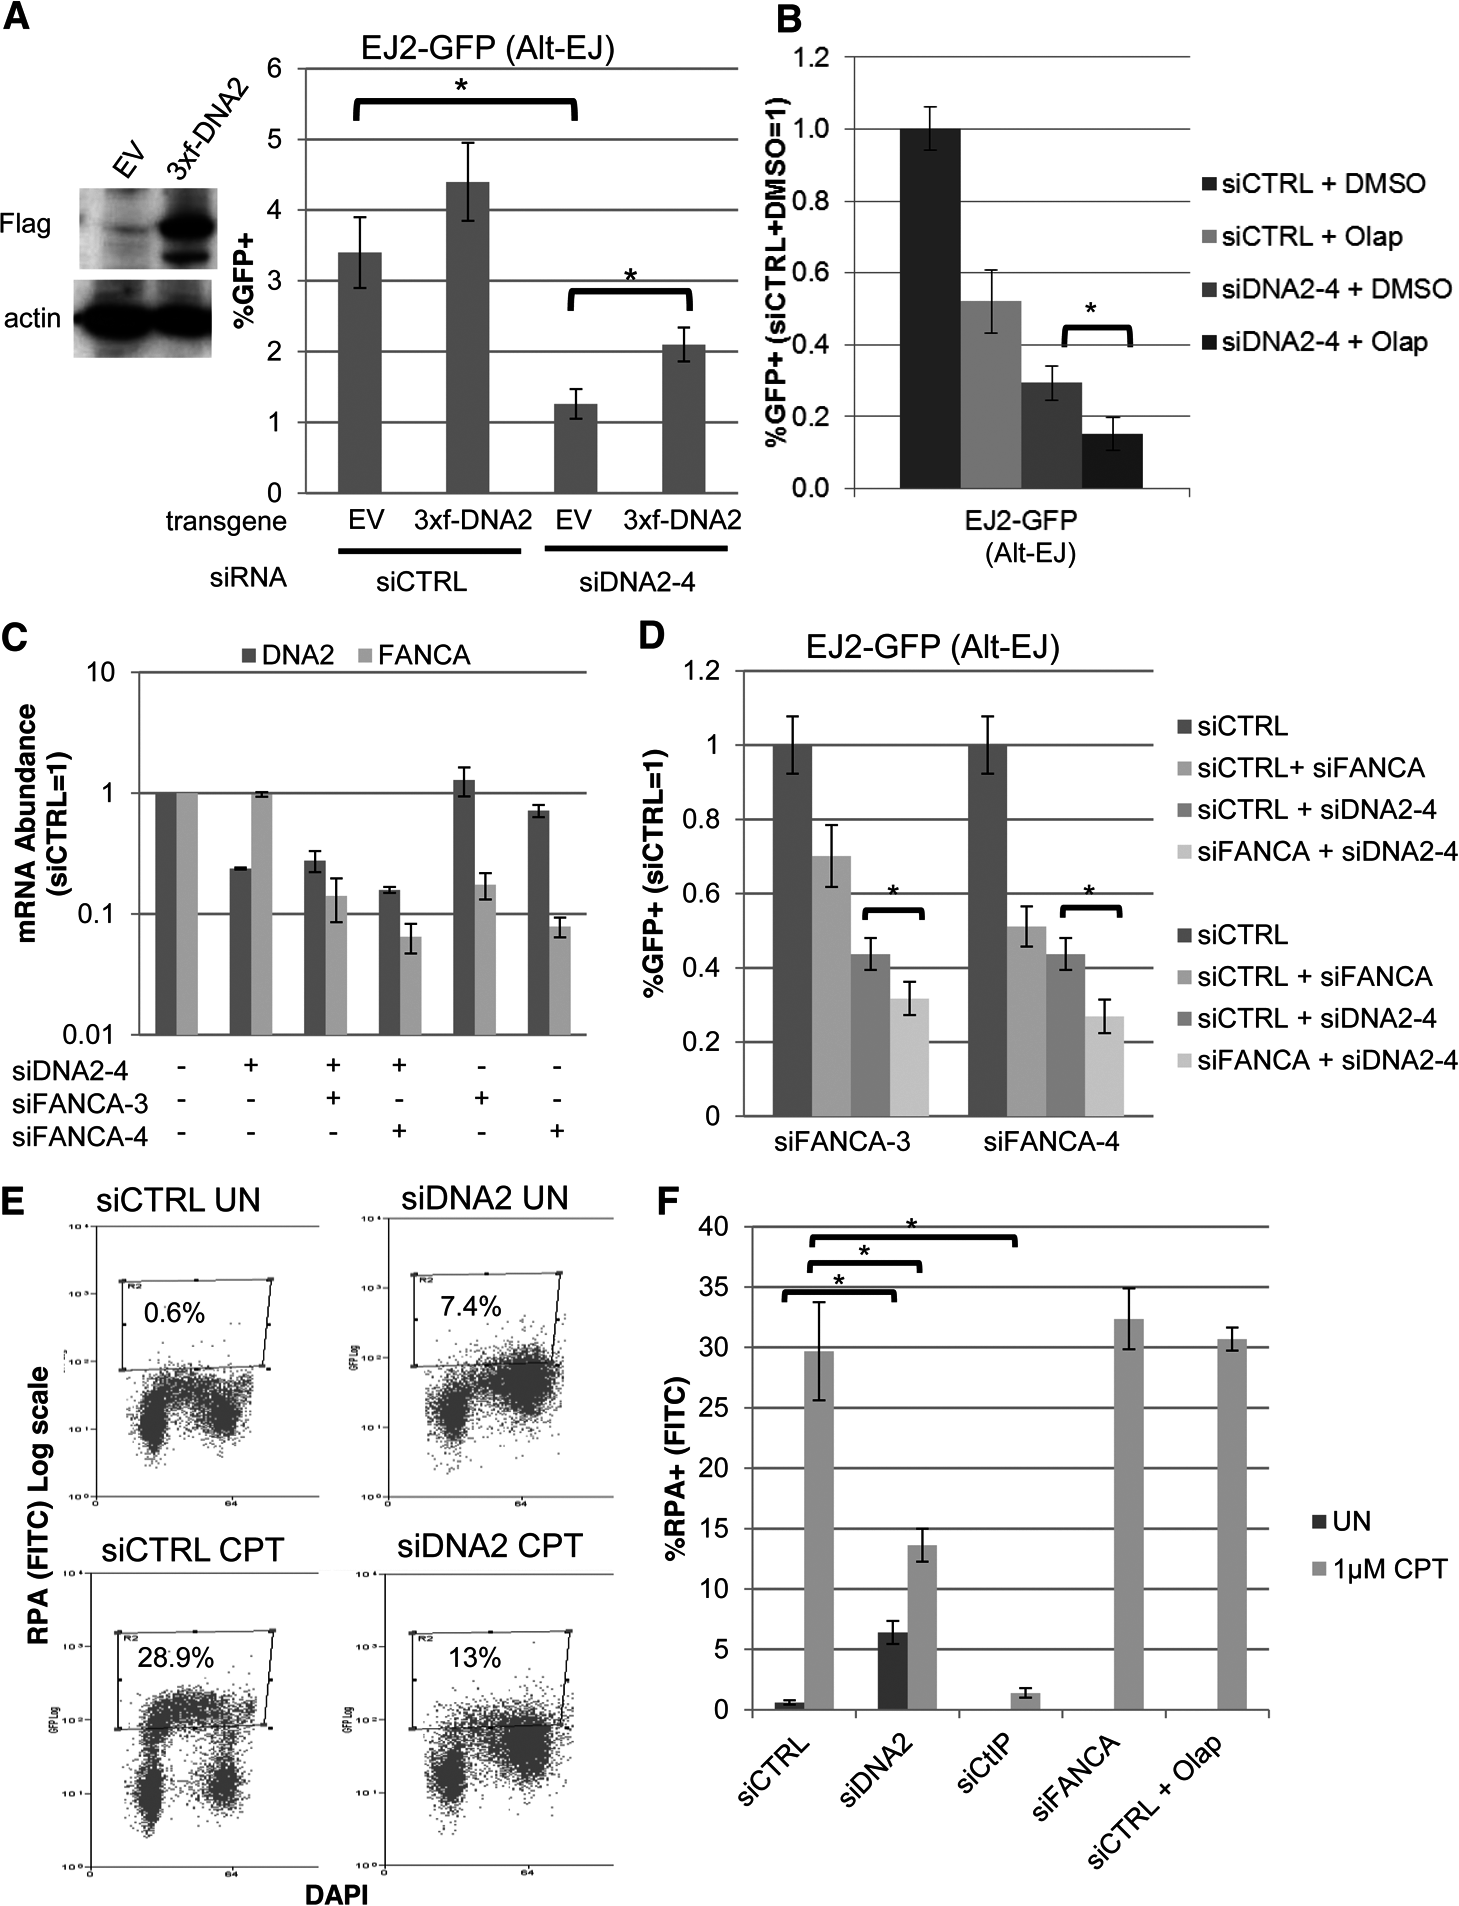 DNA2 has distinct effects on Alt-EJ and end resection, compared to FANCA and PARP.